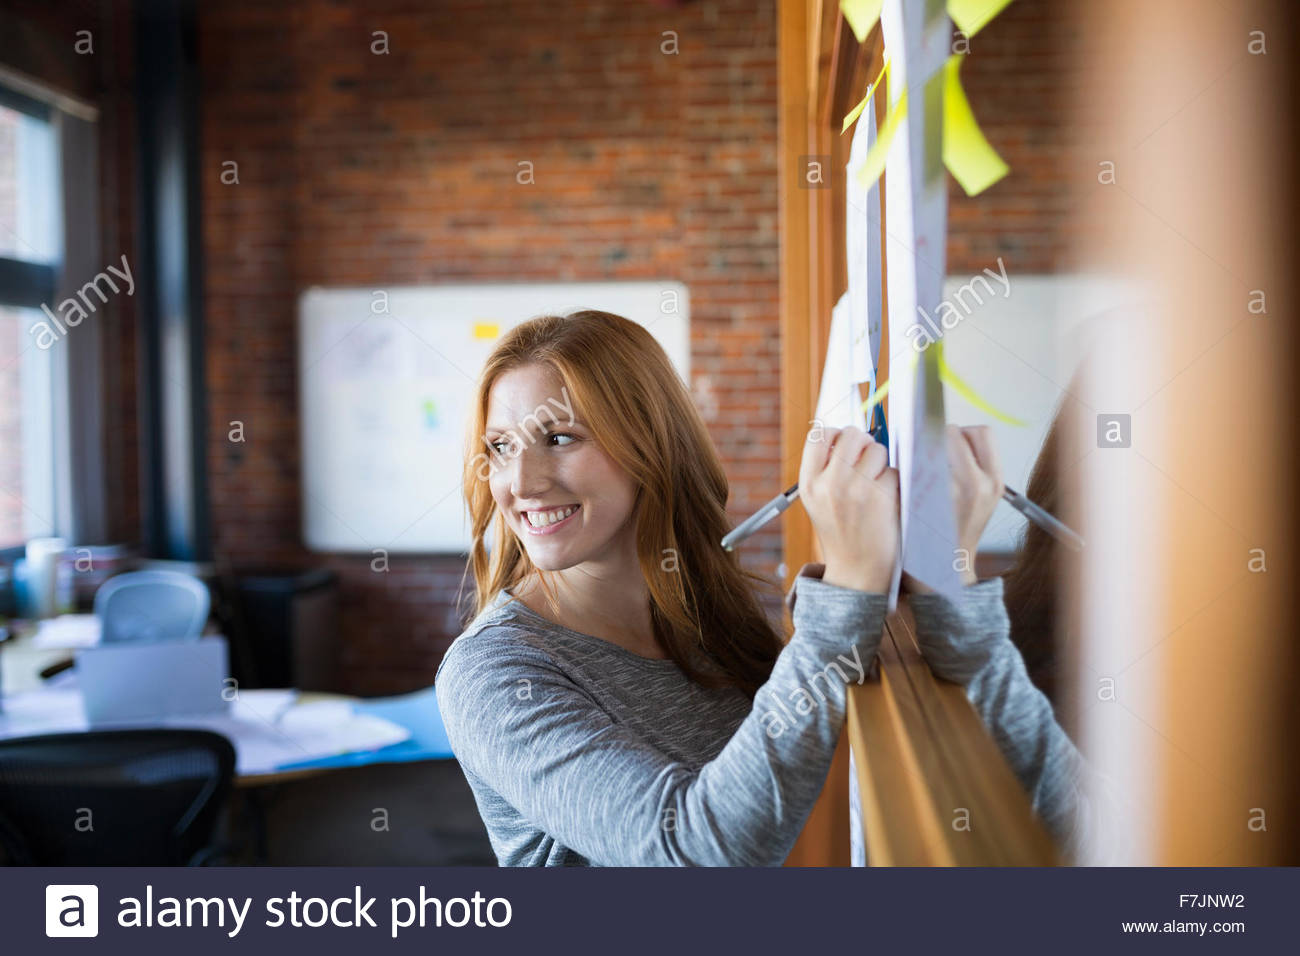 Smiling businesswoman writing on paperwork in office - Stock Image